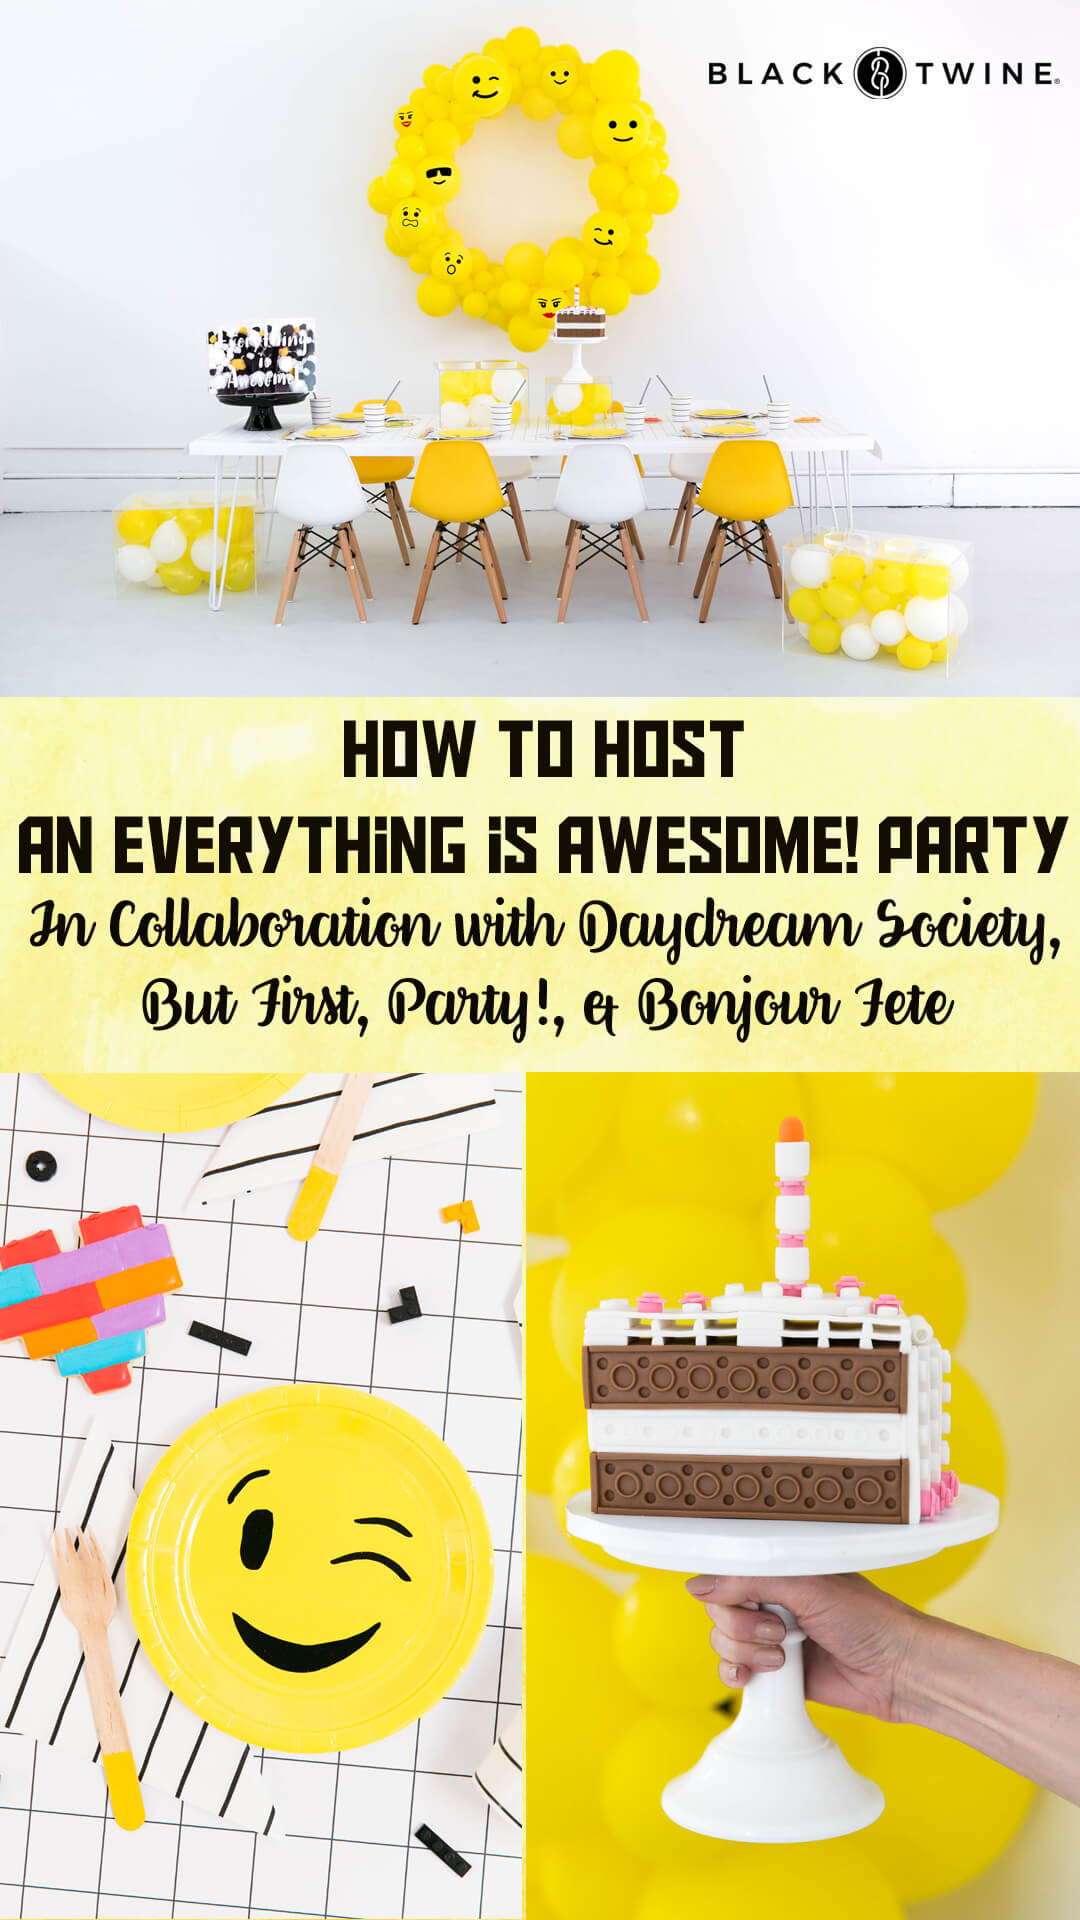 Tablescape, Place Setting and Everything is Awesome Acrylic Box from Everything is Awesome! Party In Collaboration with Daydream Society, But First, Party!, & Bonjour Fete